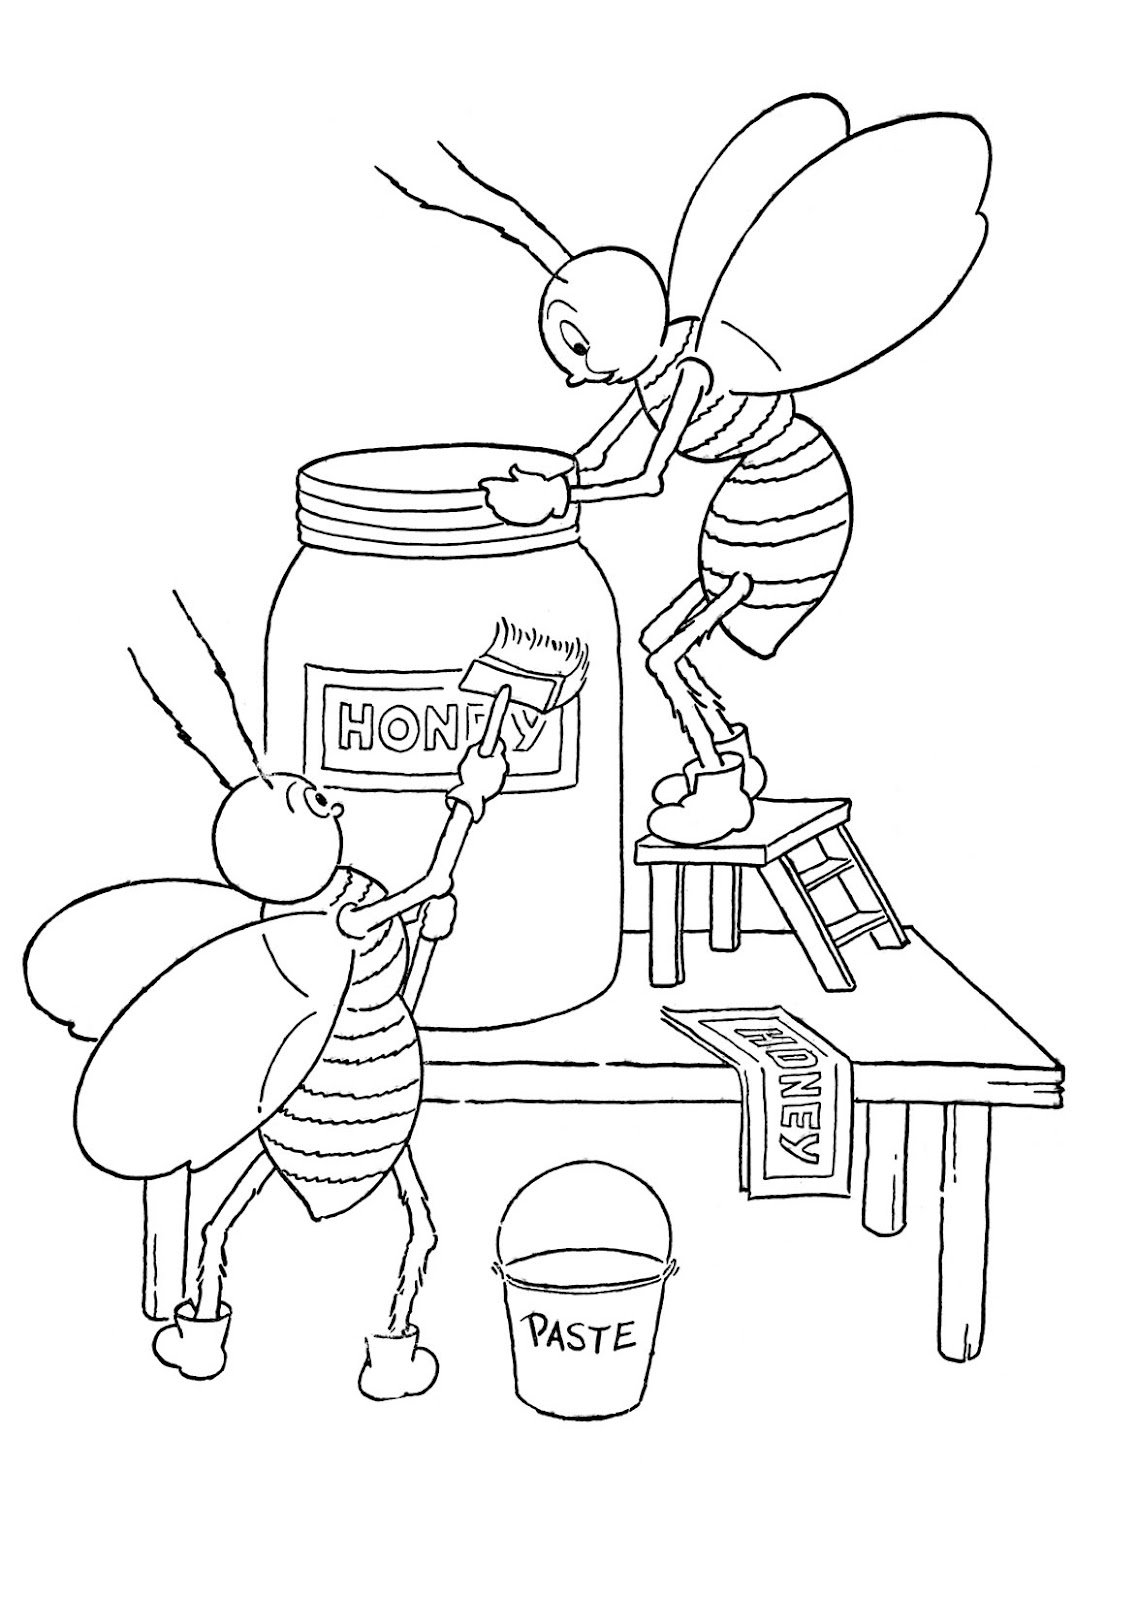 Honey Black And White Pictures For Kids